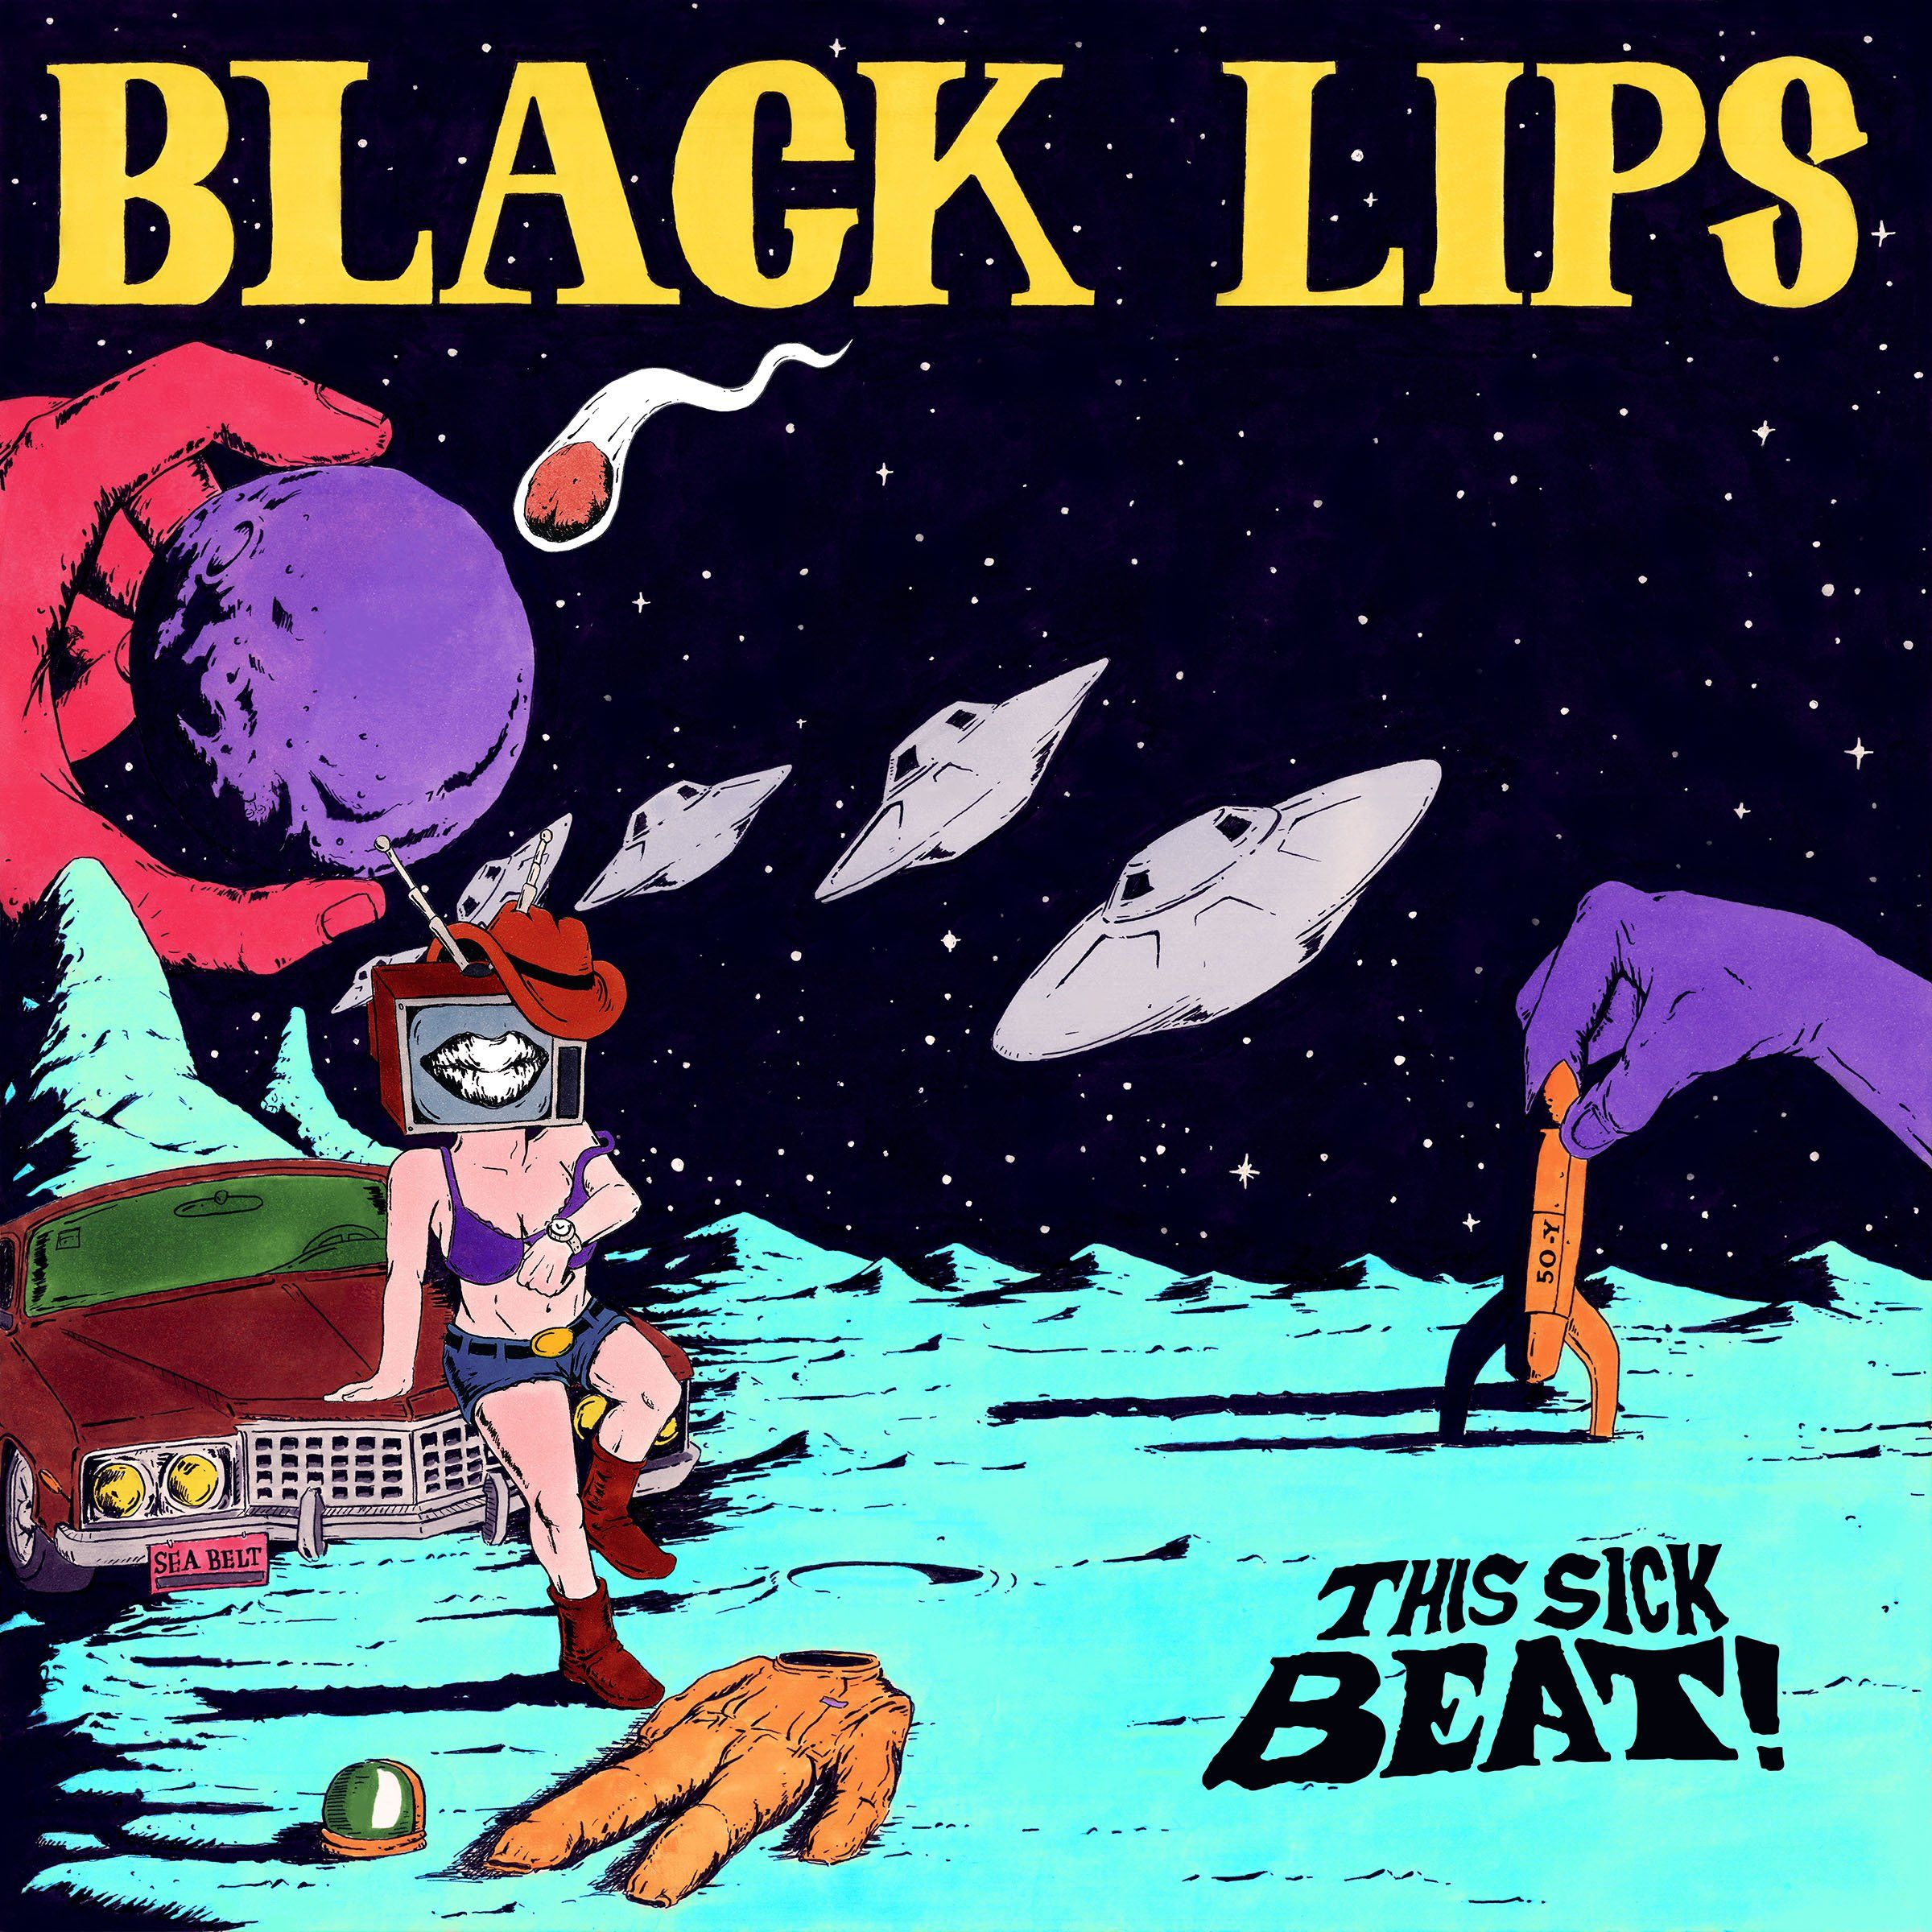 Black Lips This Sick Beat Colored Vinyl Vinyl 10 Record Store Day Black Lips Music Album Cover Record Store